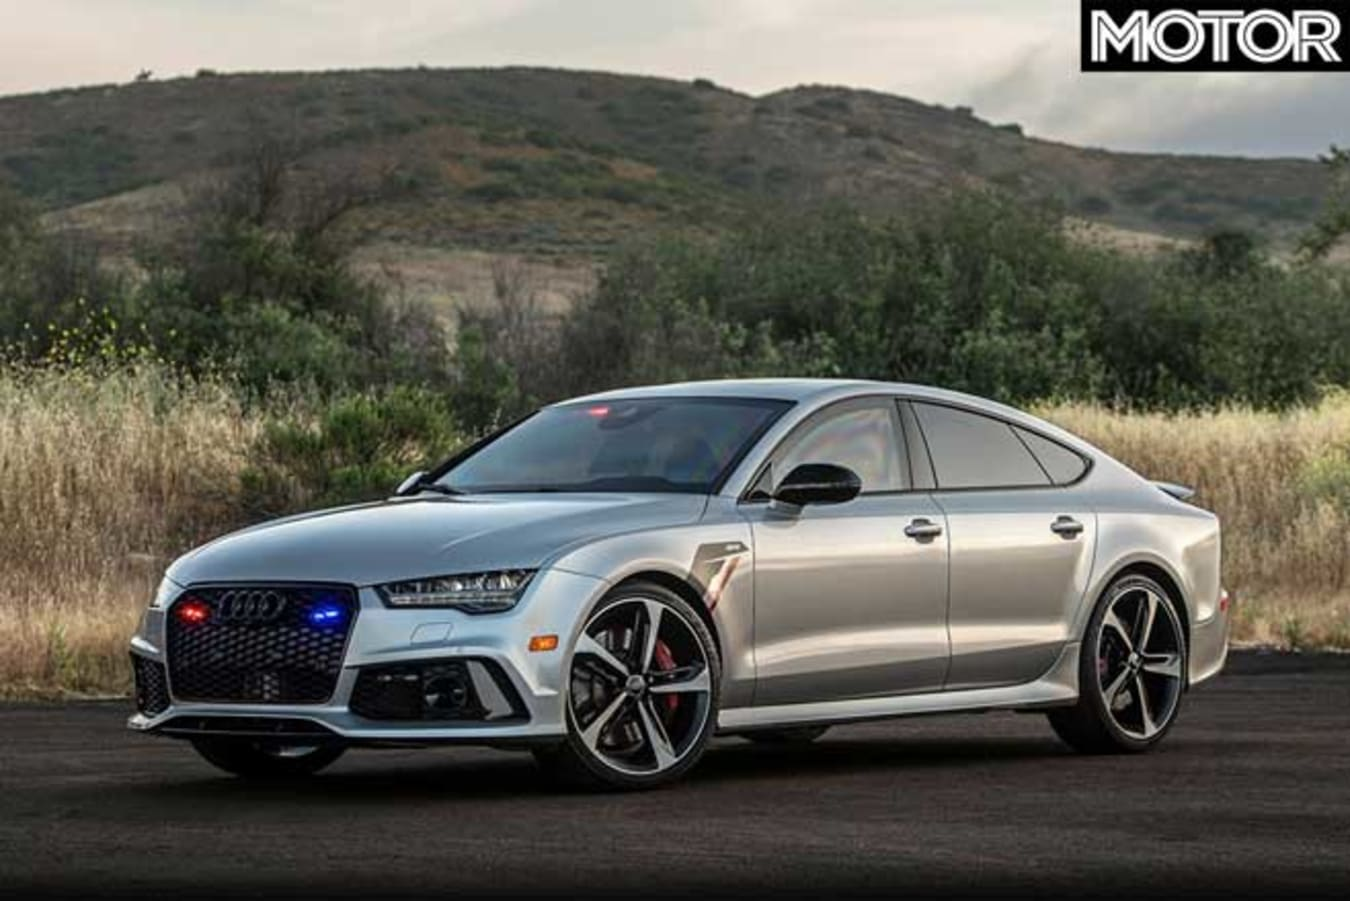 AddArmor APR armoured Audi RS7 front